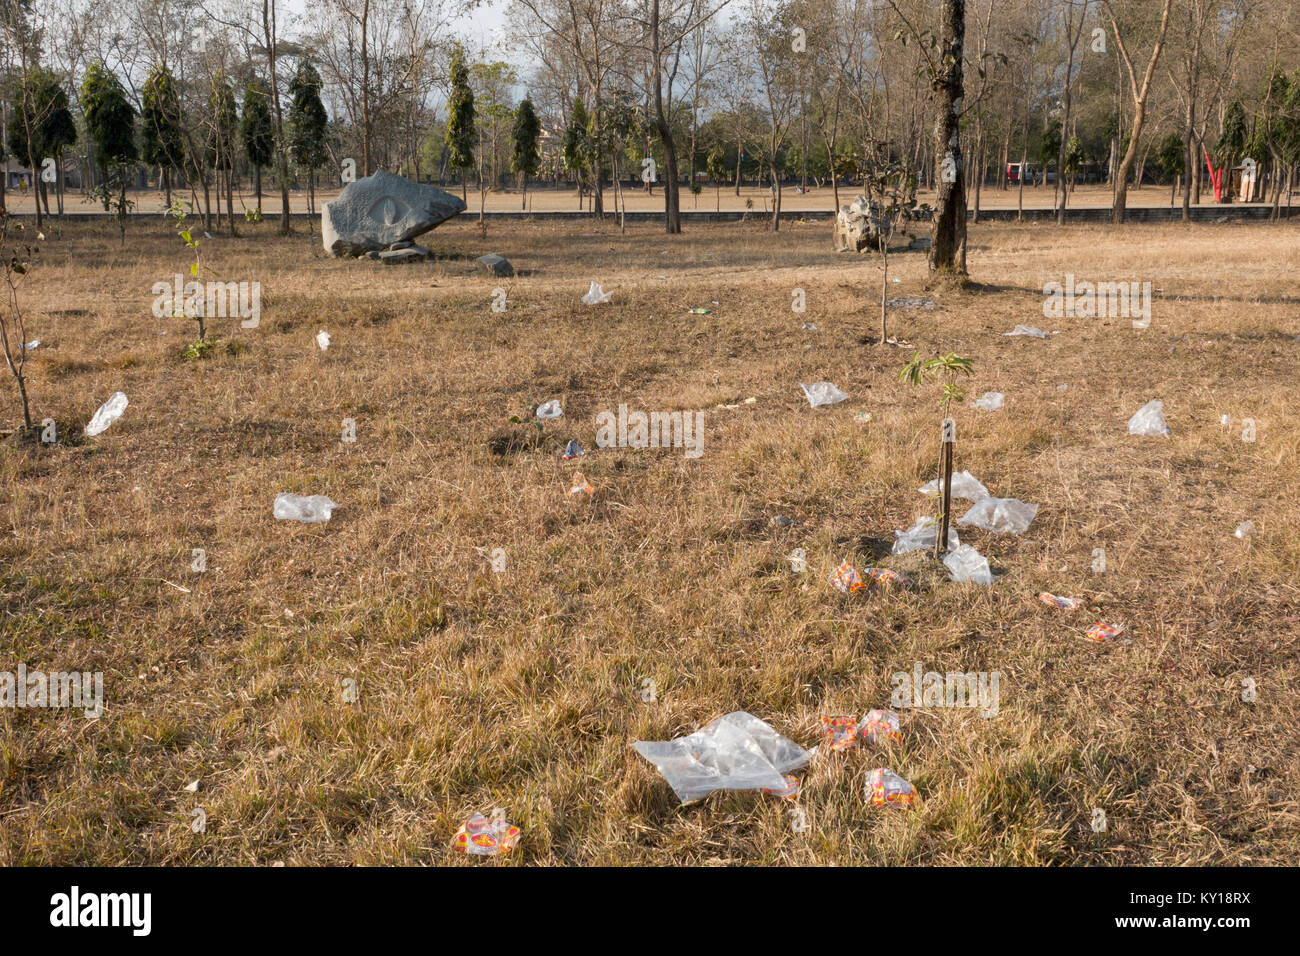 Plastic bags and other trash at park in Pokhara, Nepal Stock Photo